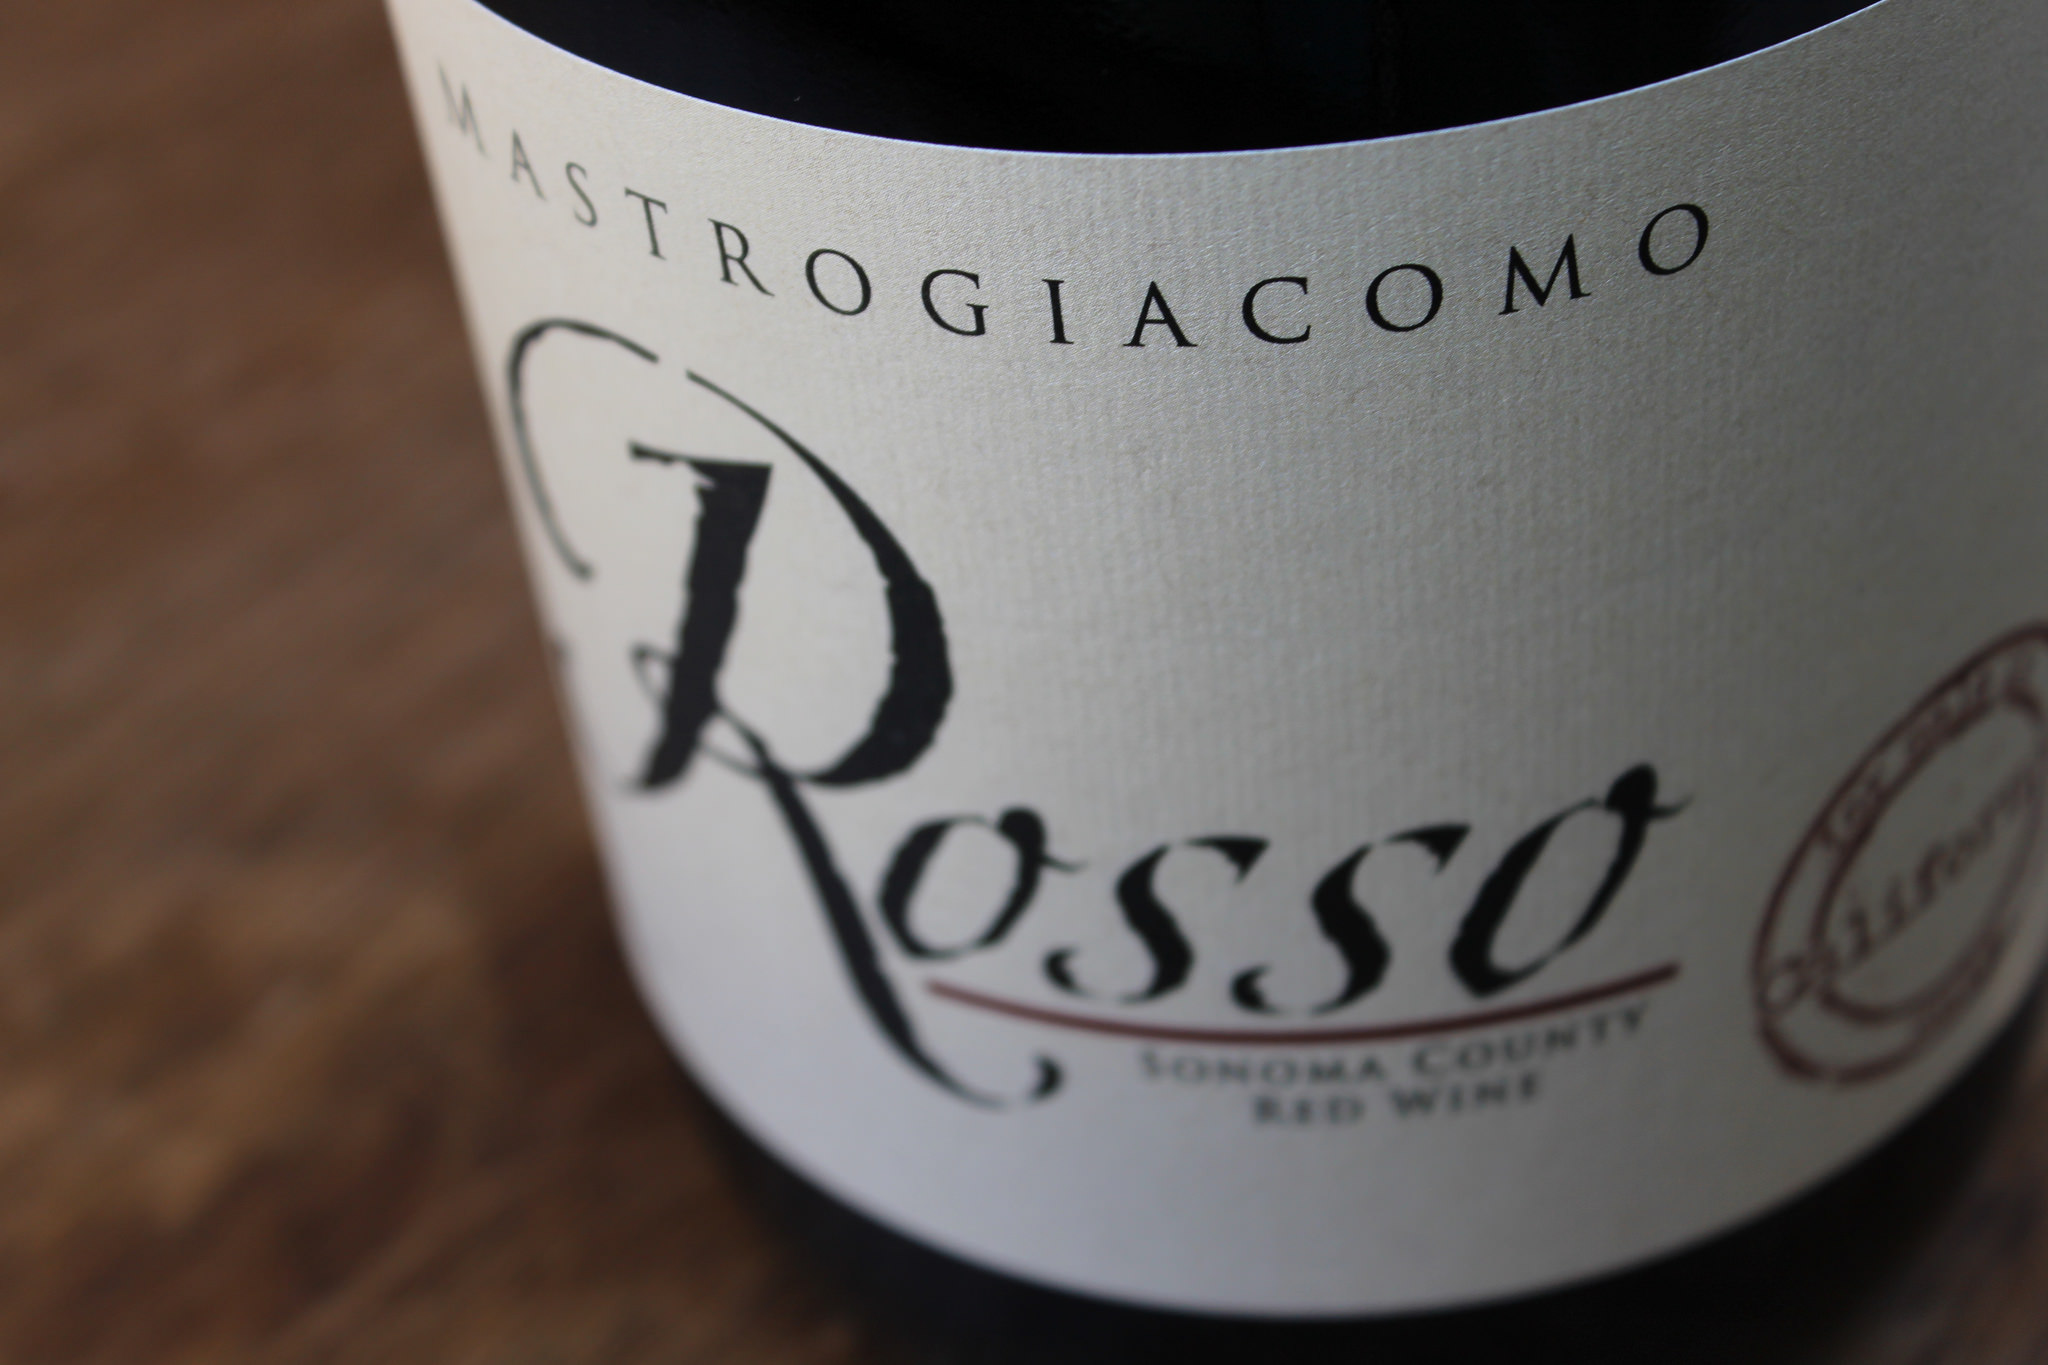 My Mastrogiacomo Rosso is a Sonoma County product, filled with top quality, hand-picked fruit.